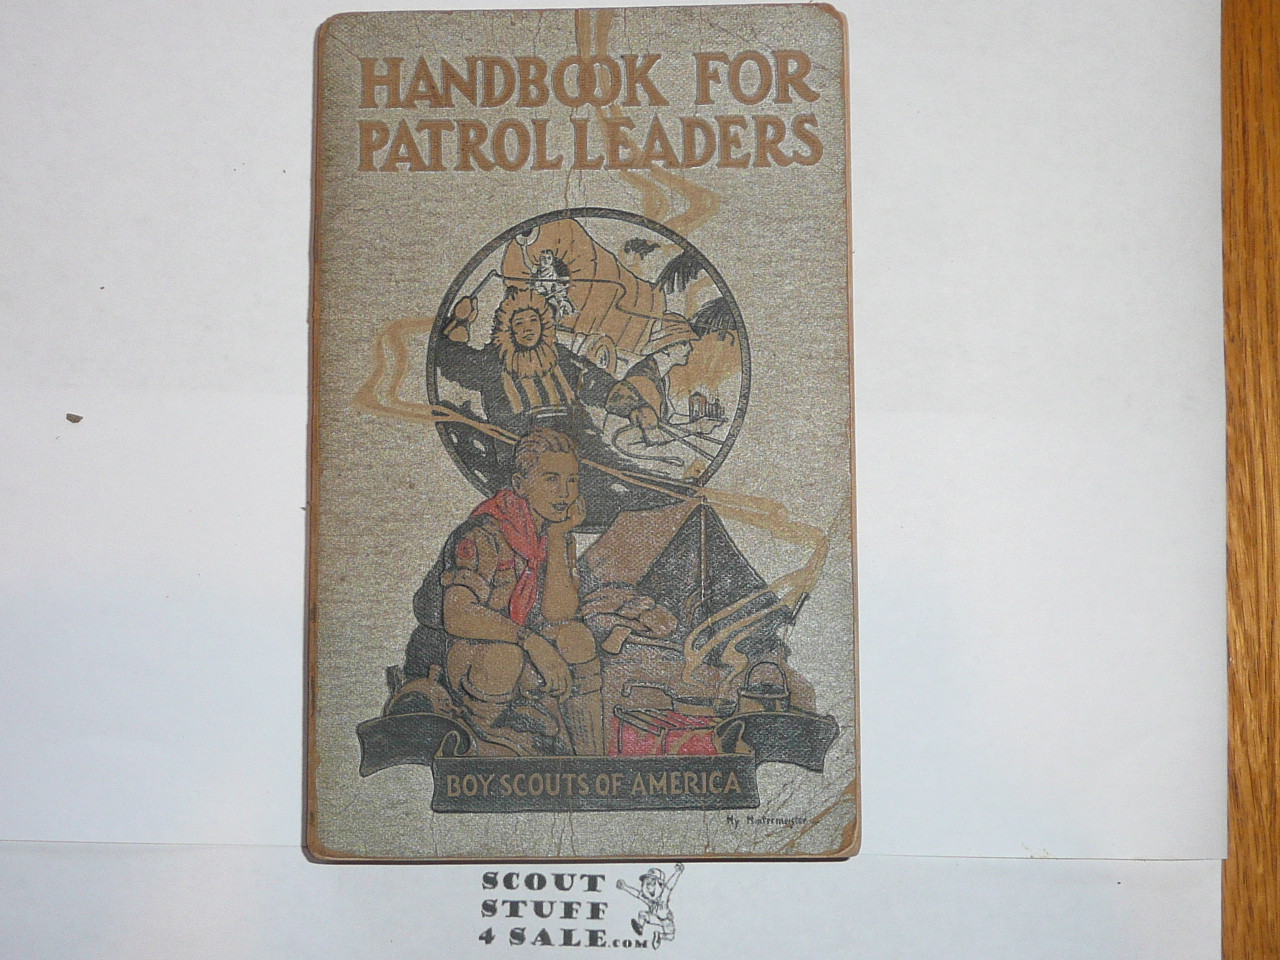 1945 Handbook For Patrol Leaders, First Edition, Fourteenth Printing, Very Good Used Condition